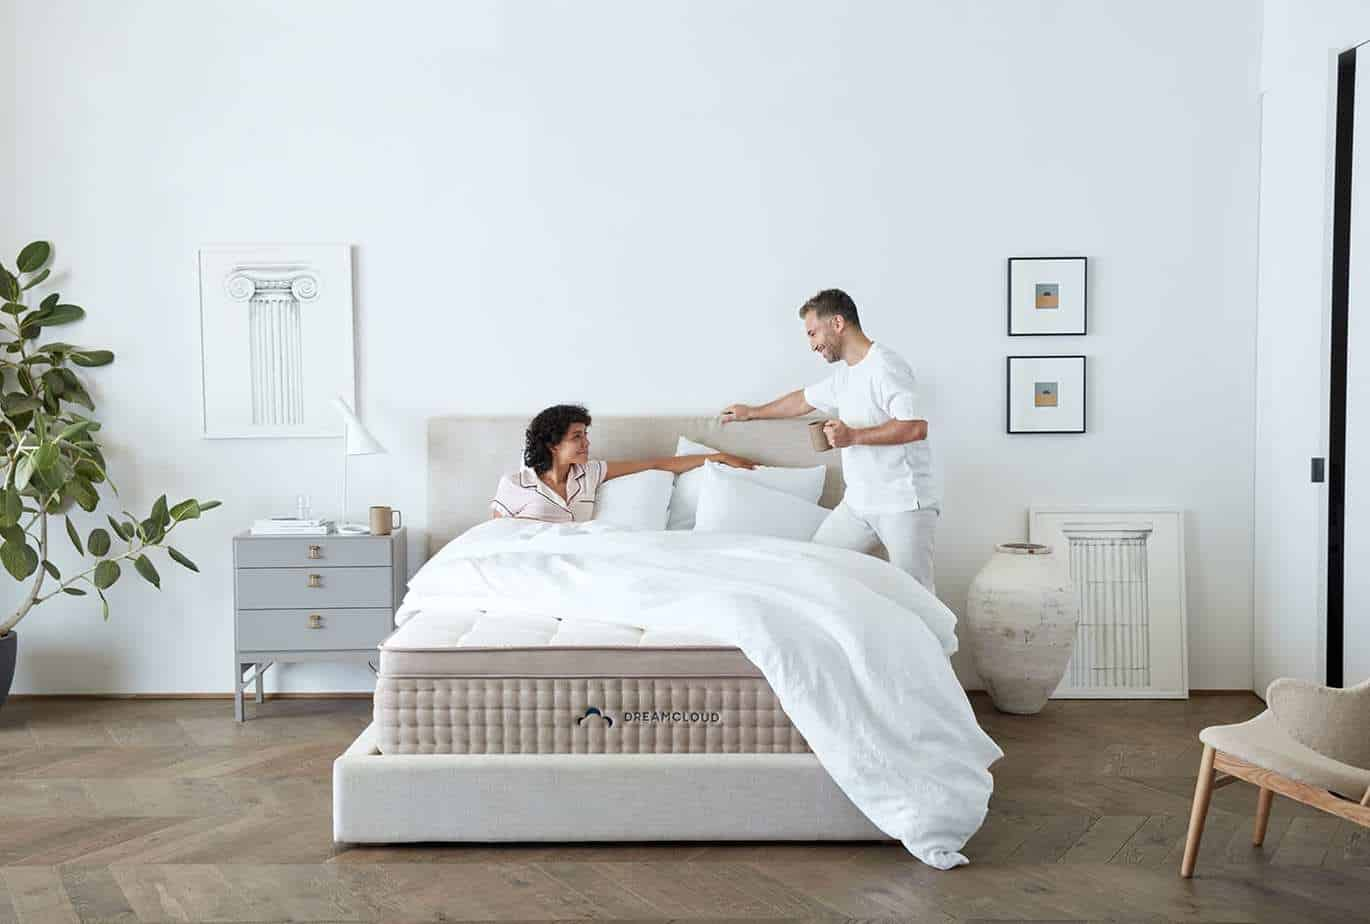 6 Things You Need For The Bedroom the Ultimate Romantic Makeover